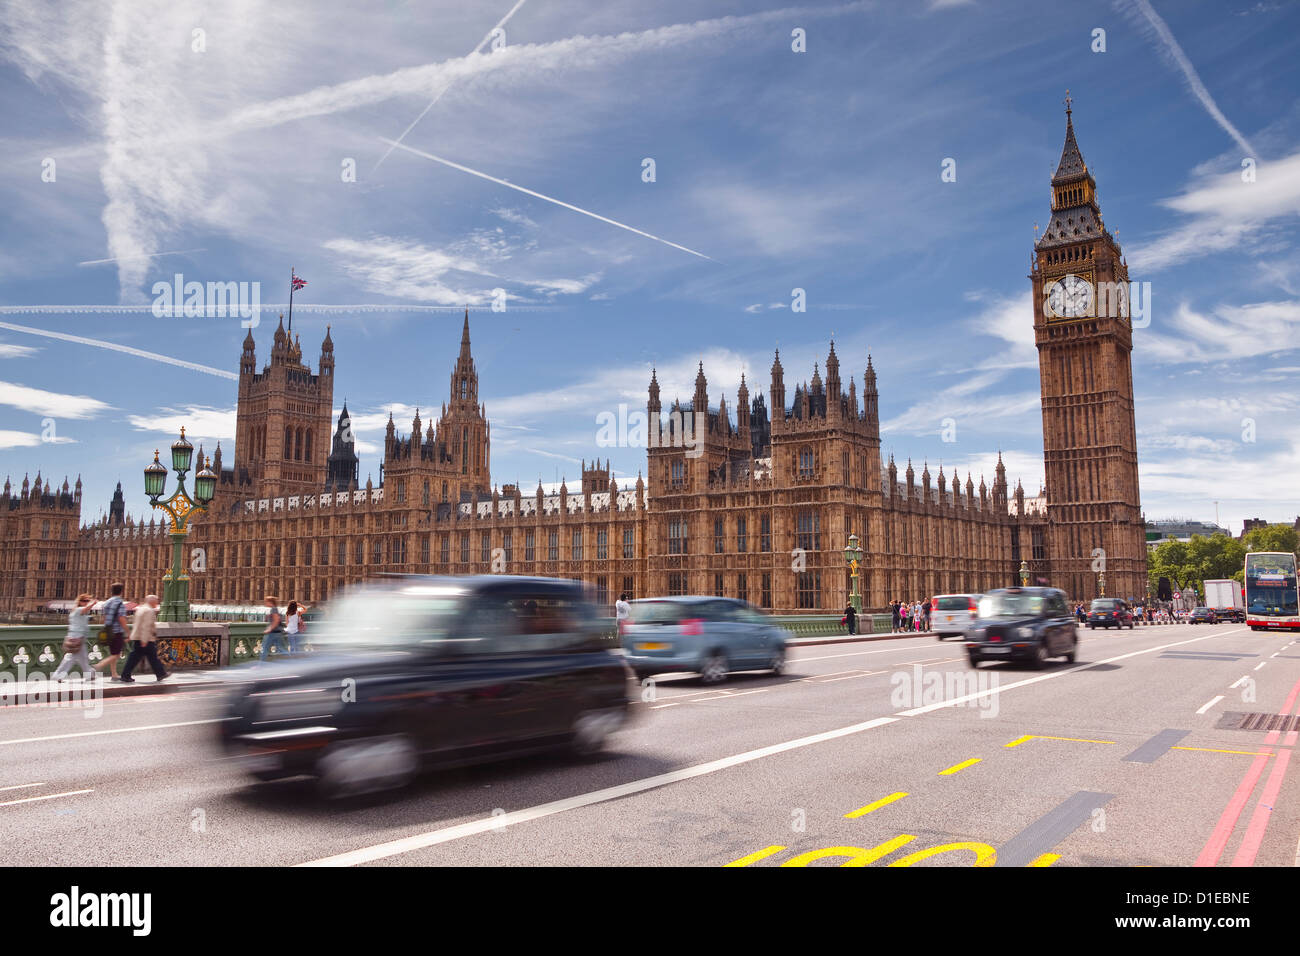 Westminster Bridge and the Houses of Parliament, Westminster, London, England, United Kingdom, Europe - Stock Image